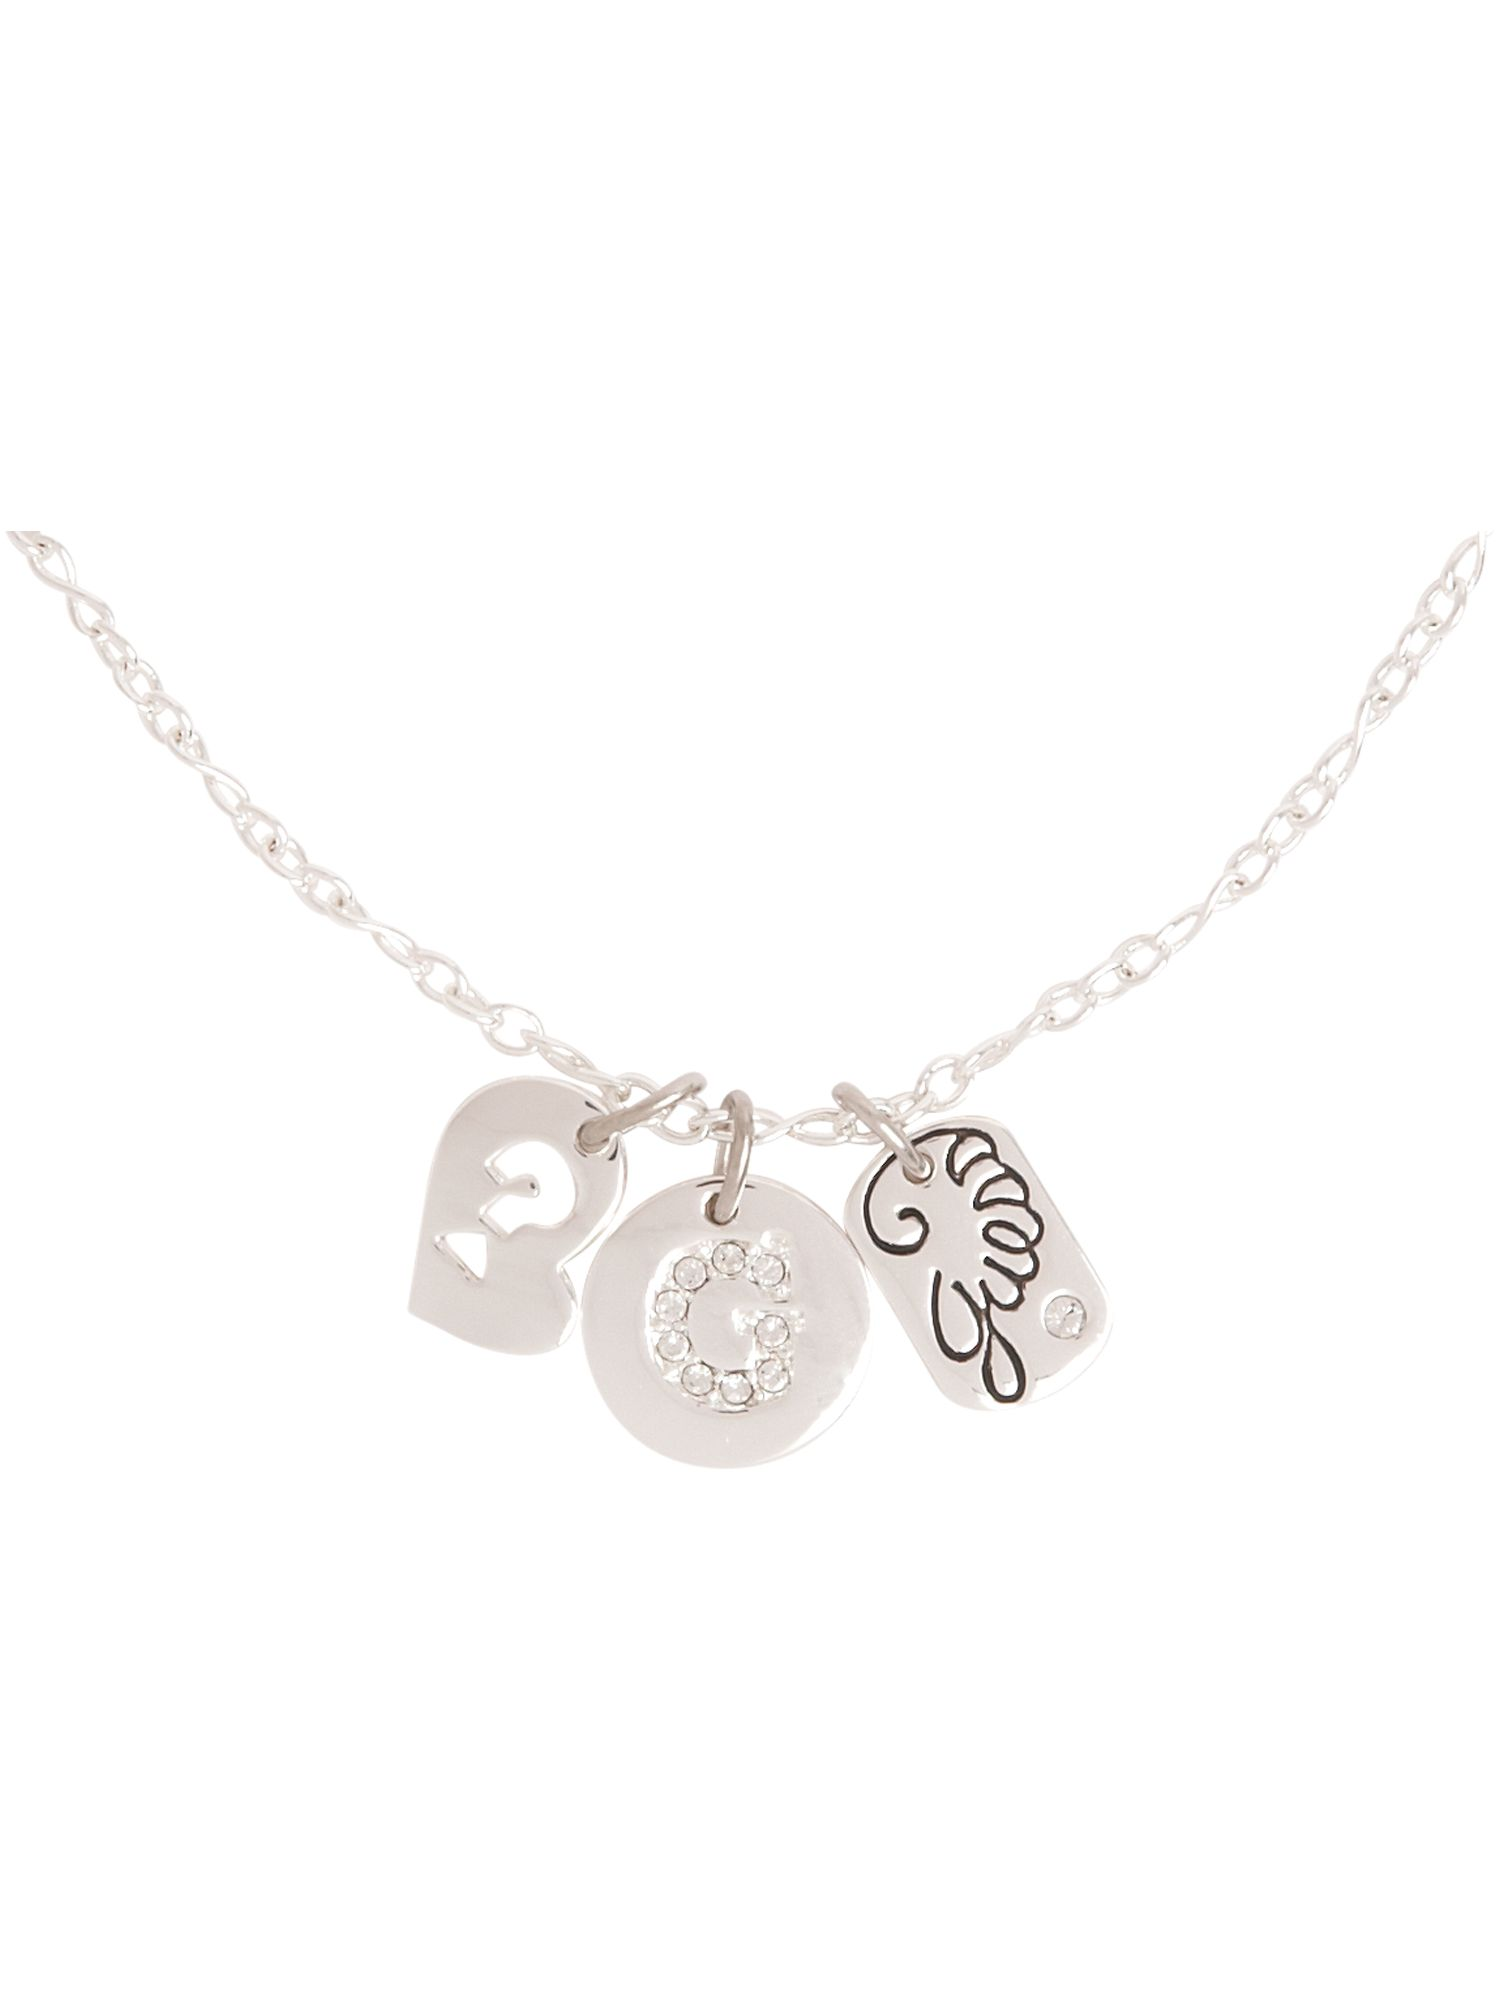 Guess Triple charm silver plated necklace product image